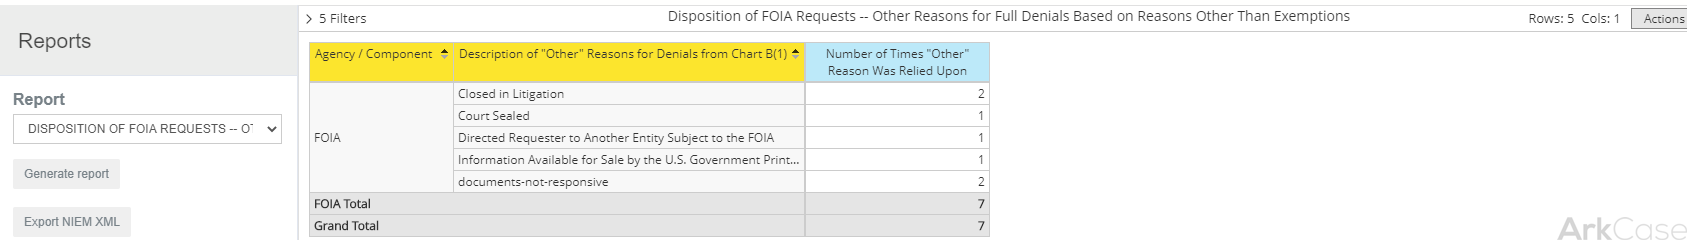 Dispositions of FOIA Requests -- Number of Times Exemptions Applied